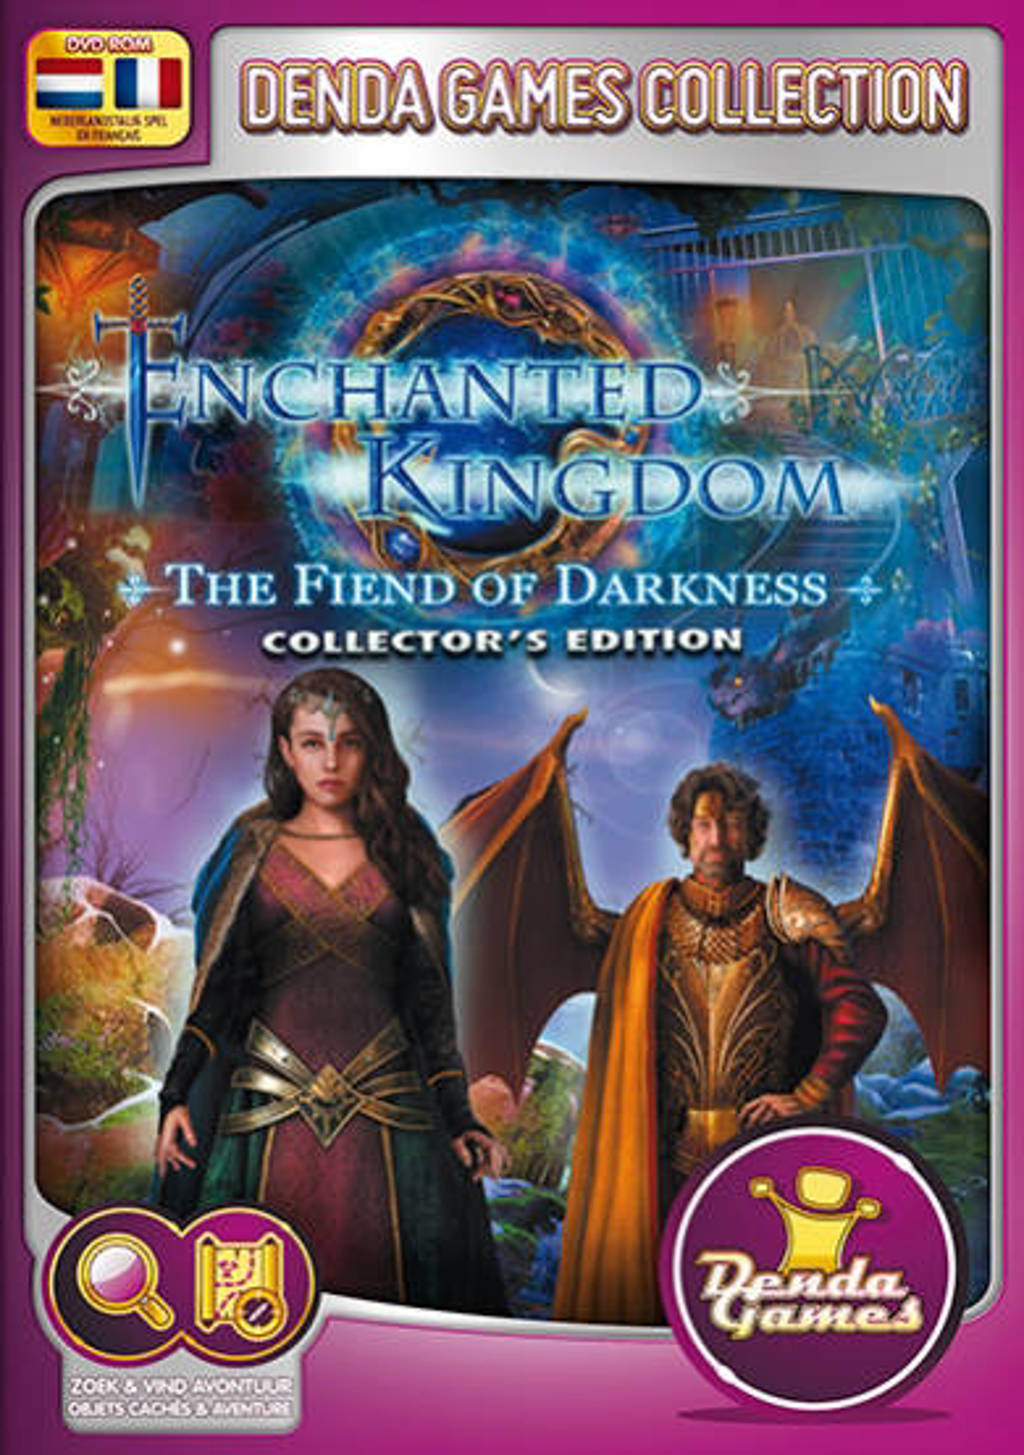 Enchanted kingdom - The Fiend of darkness (Collectors edition) (PC)